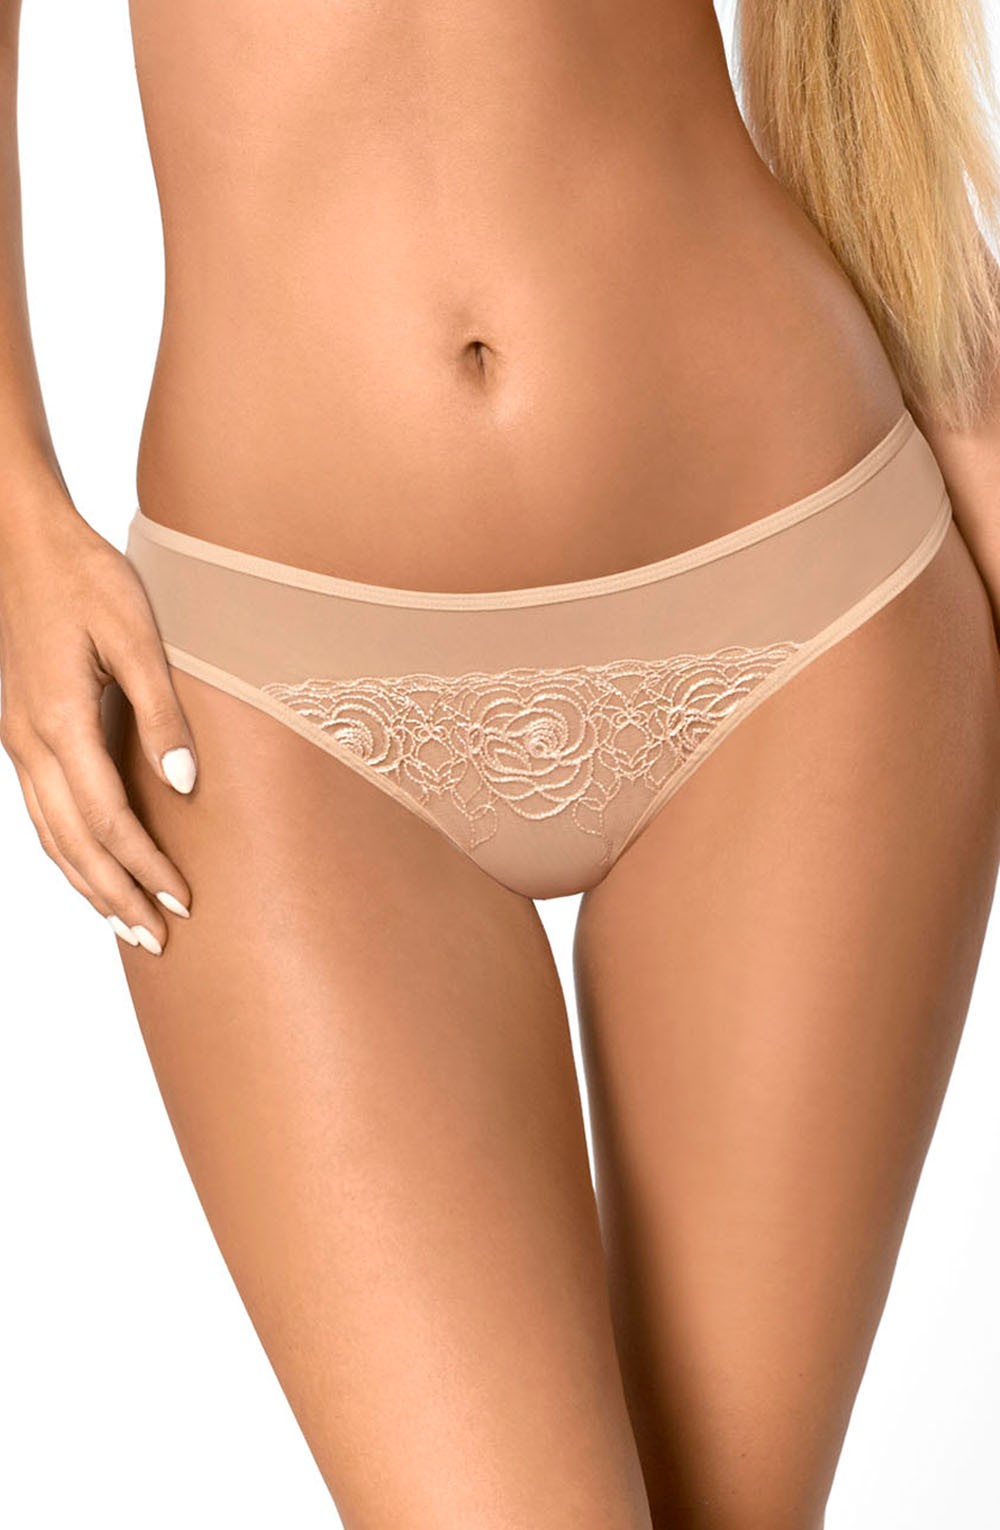 ABBY_BEIGE_STRING_CLOSE